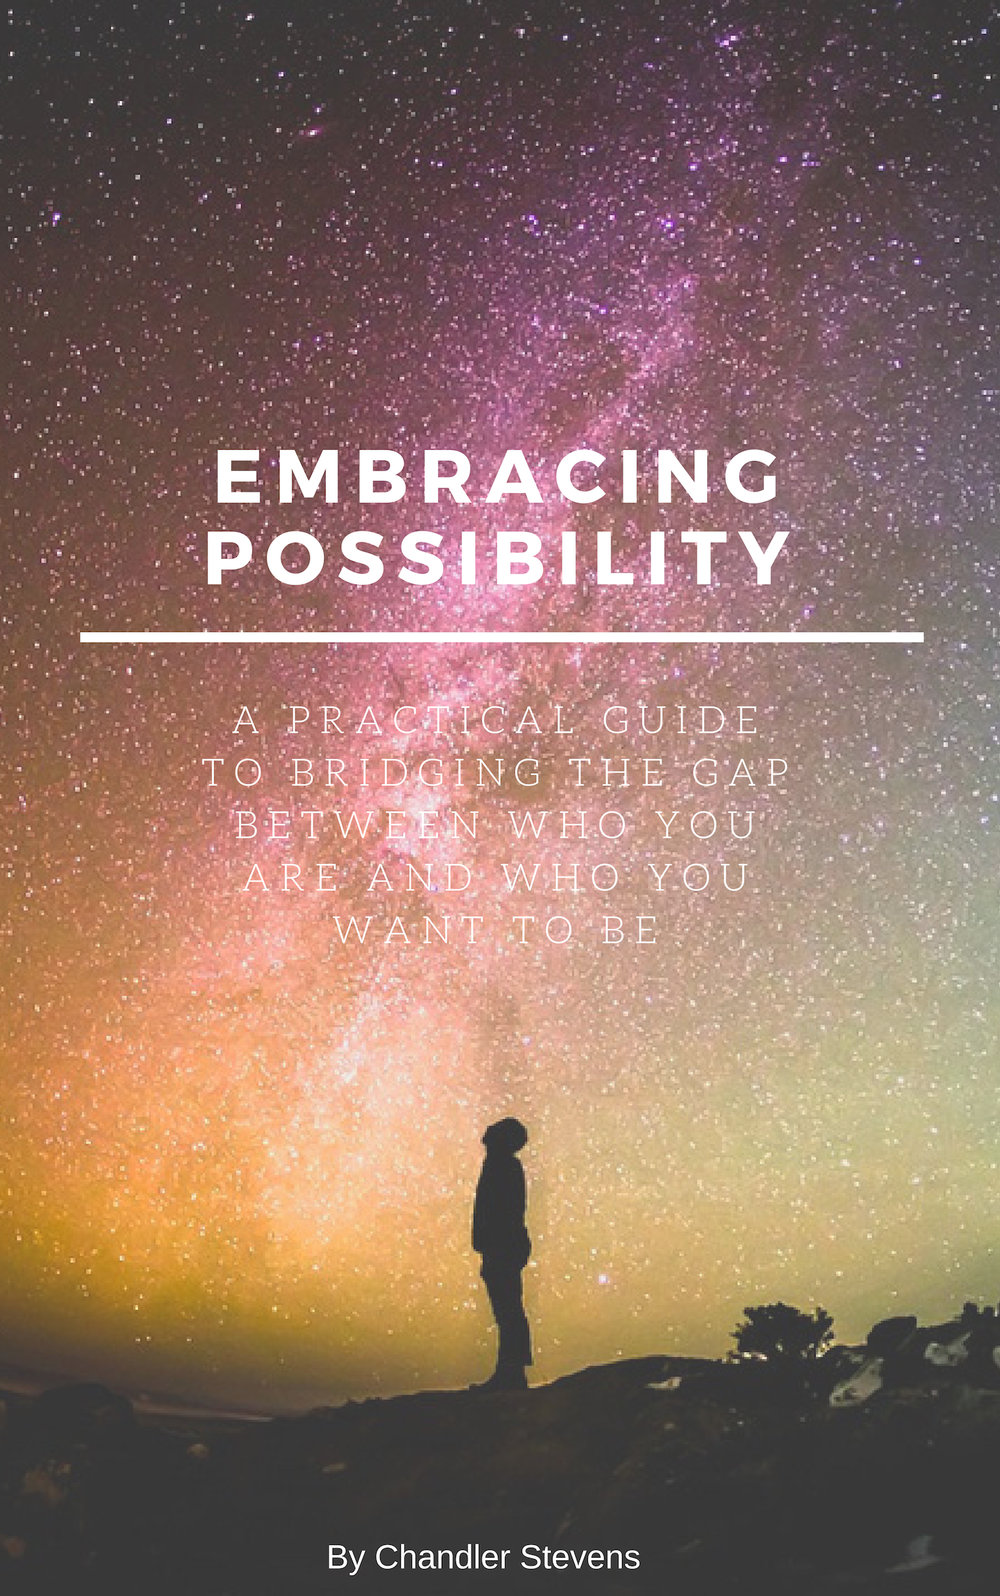 Embracing Possibility.jpg